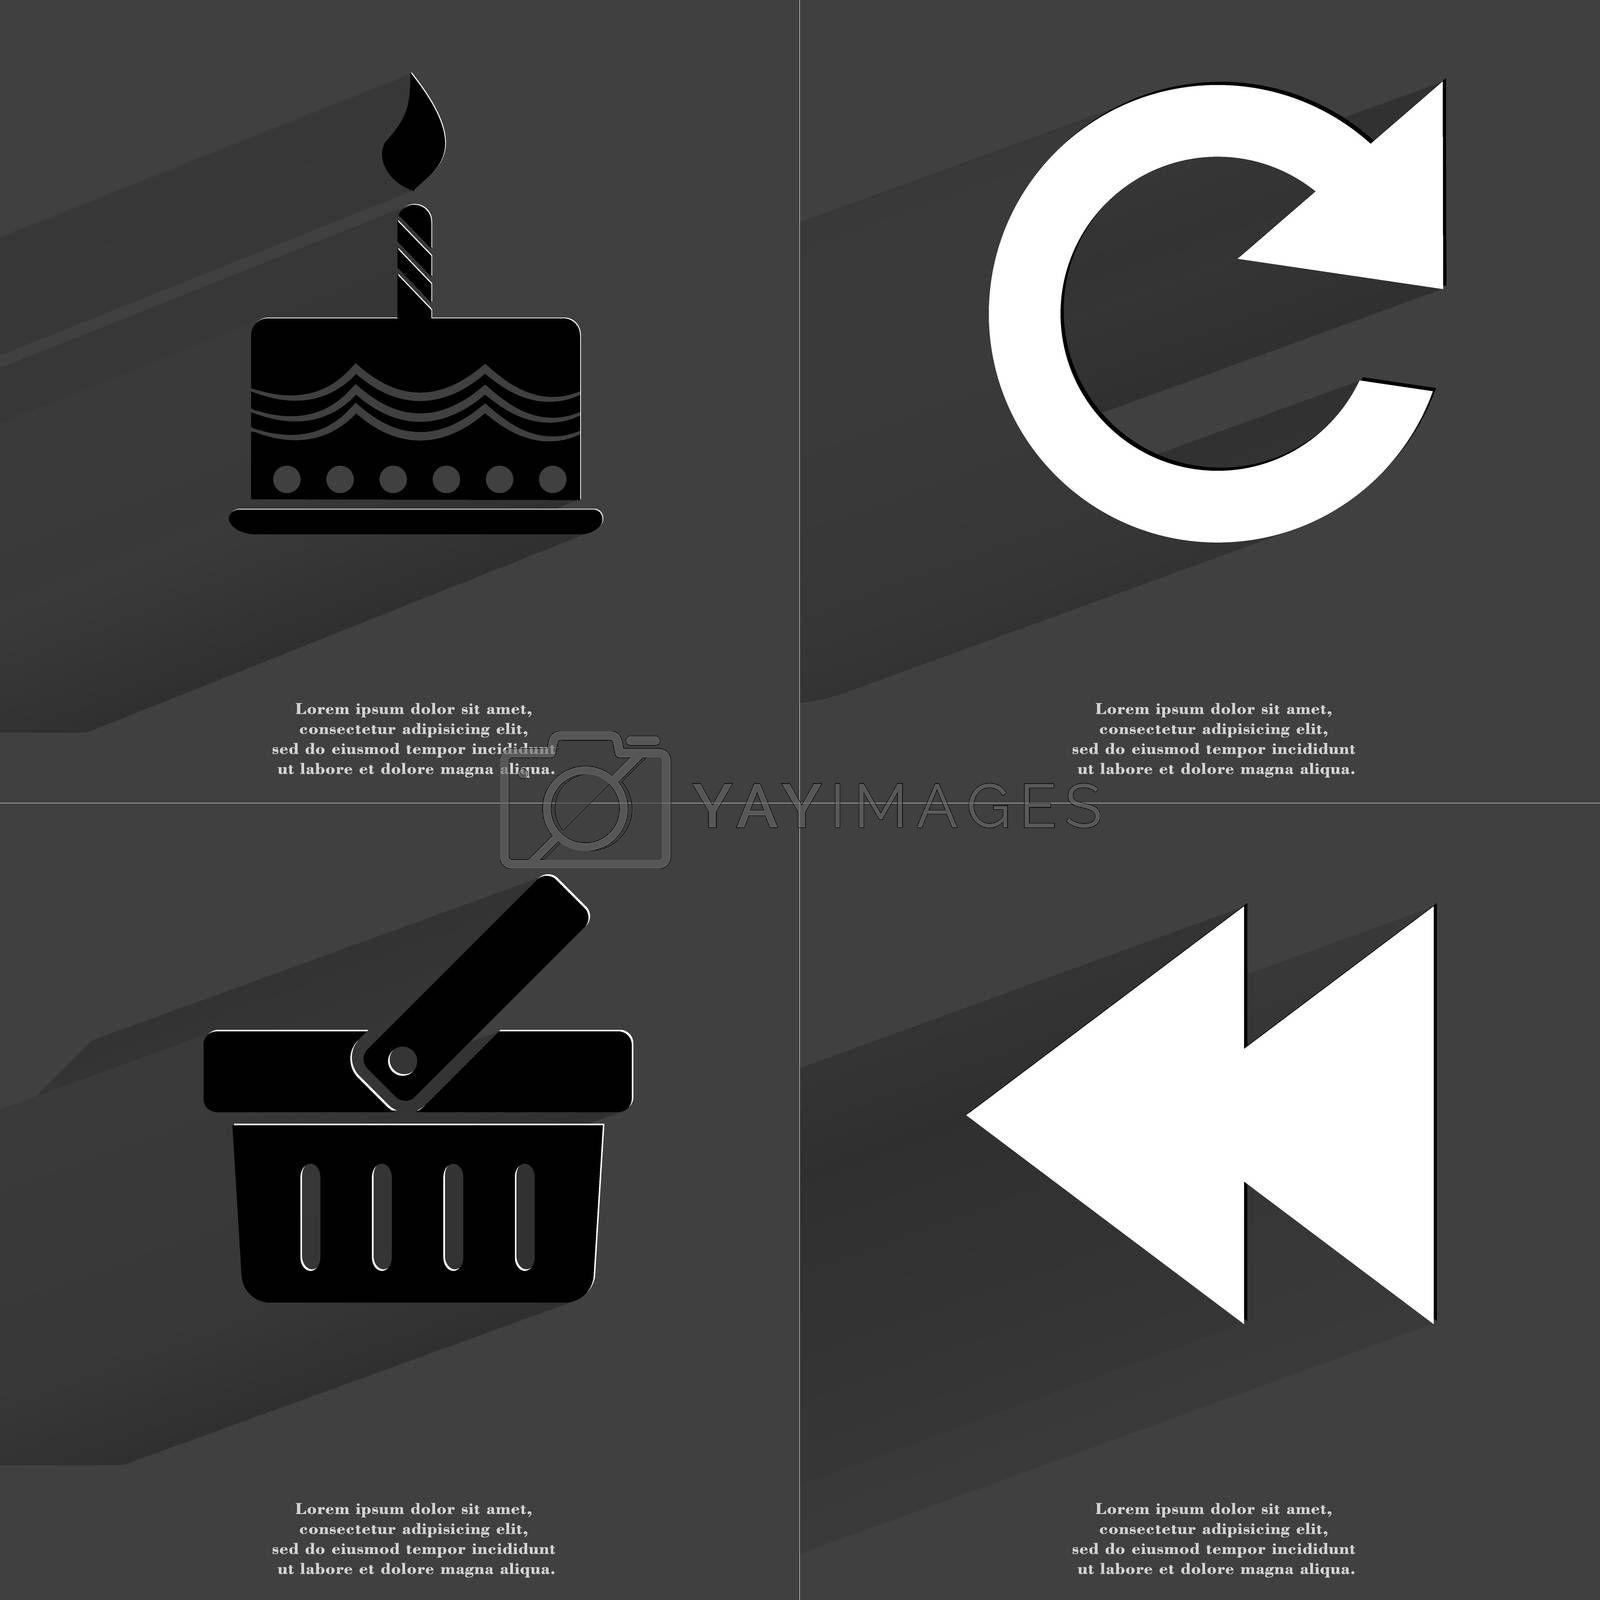 Royalty free image of Cake, Reload icon, Basket, Two arrows media icon. Symbols with long shadow. Flat design by serhii_lohvyniuk